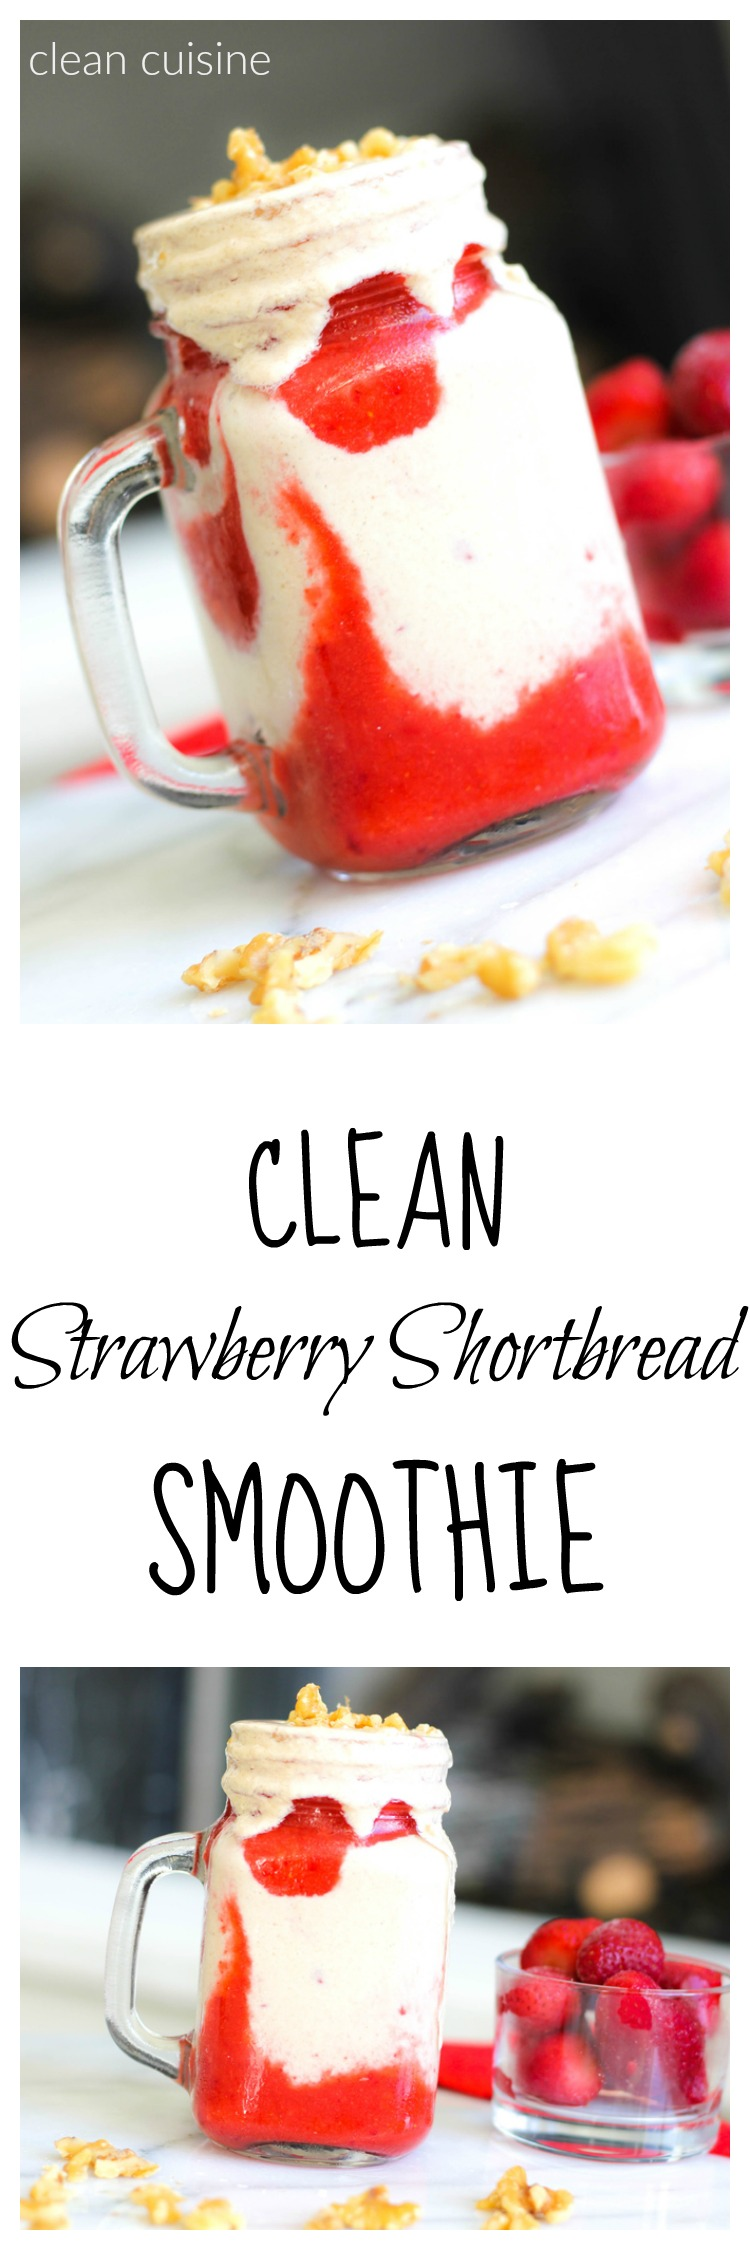 Strawberry Shortbread Smoothie